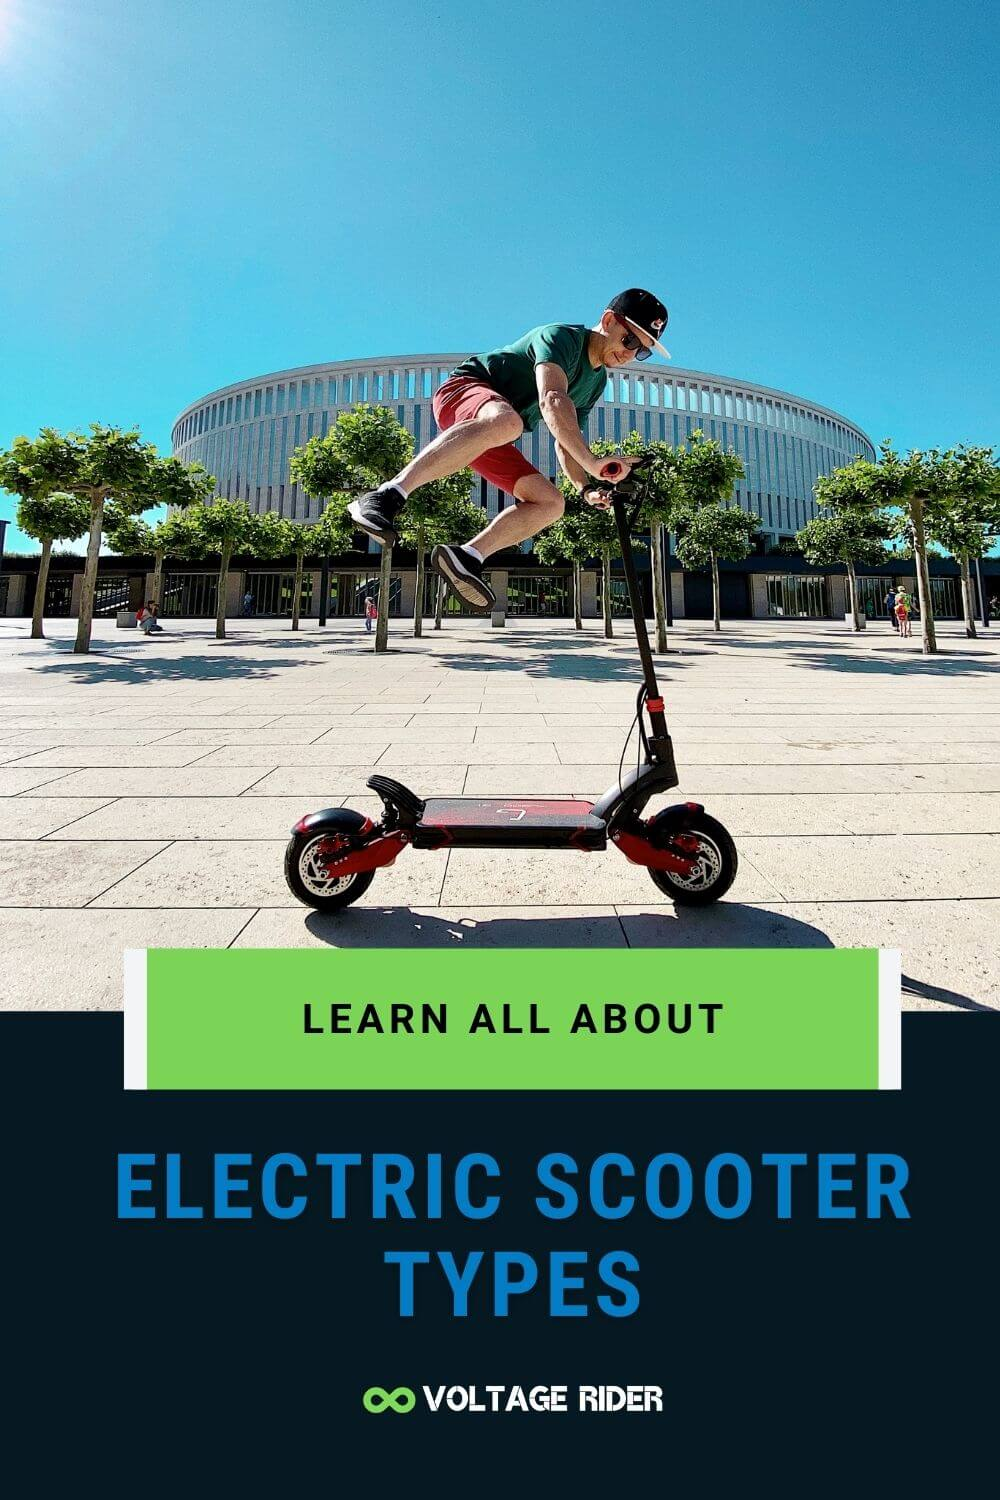 A man is riding electric kick scooter type